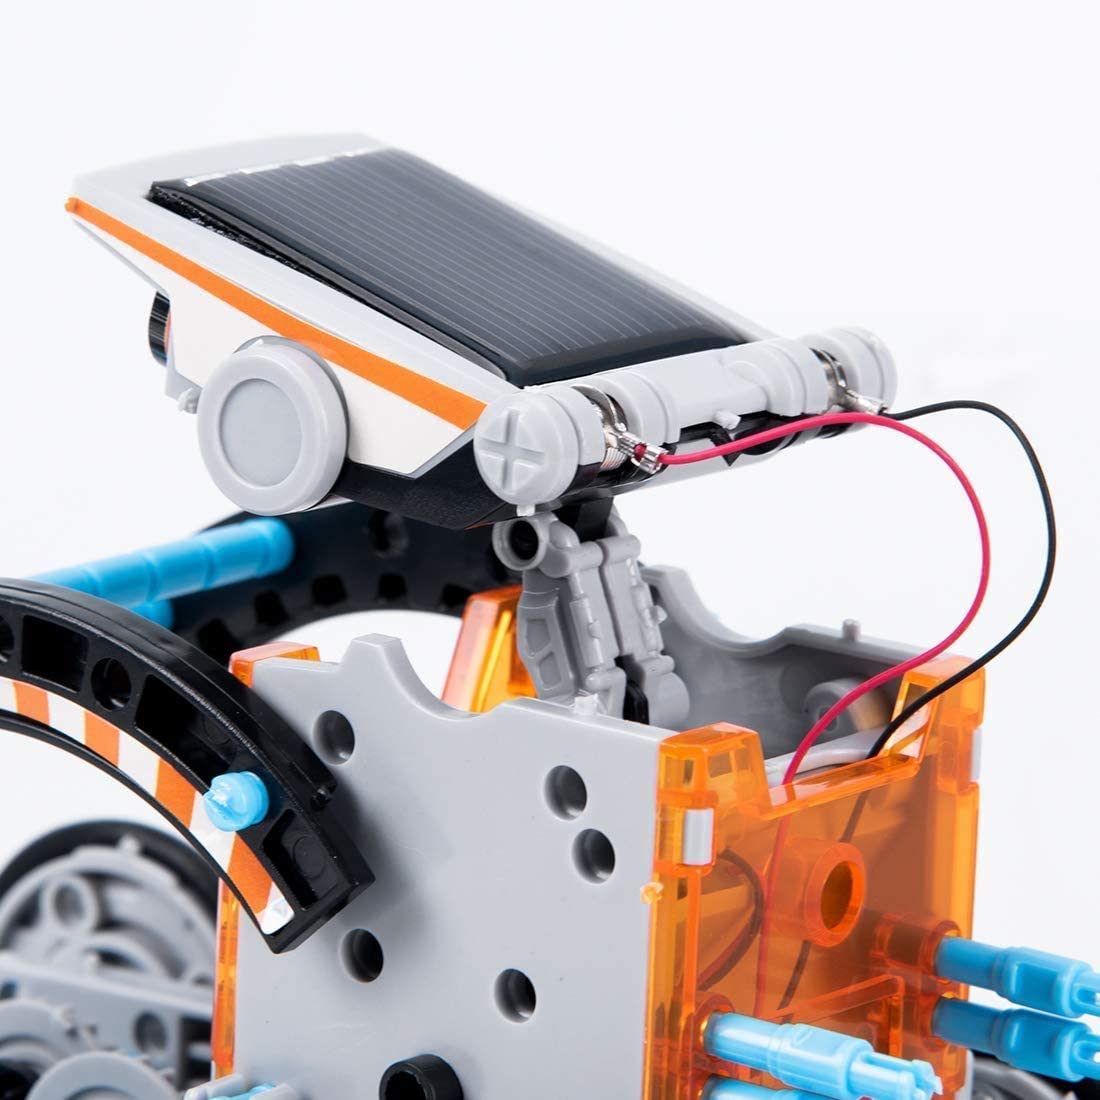 GeemakerStar STEM Educational Toys Science Kit Solar Robot DIY 12-in-1 Building Experiment for Kids Aged 8-10-12 and Older,190 Pieces Solar Powered by The Sun